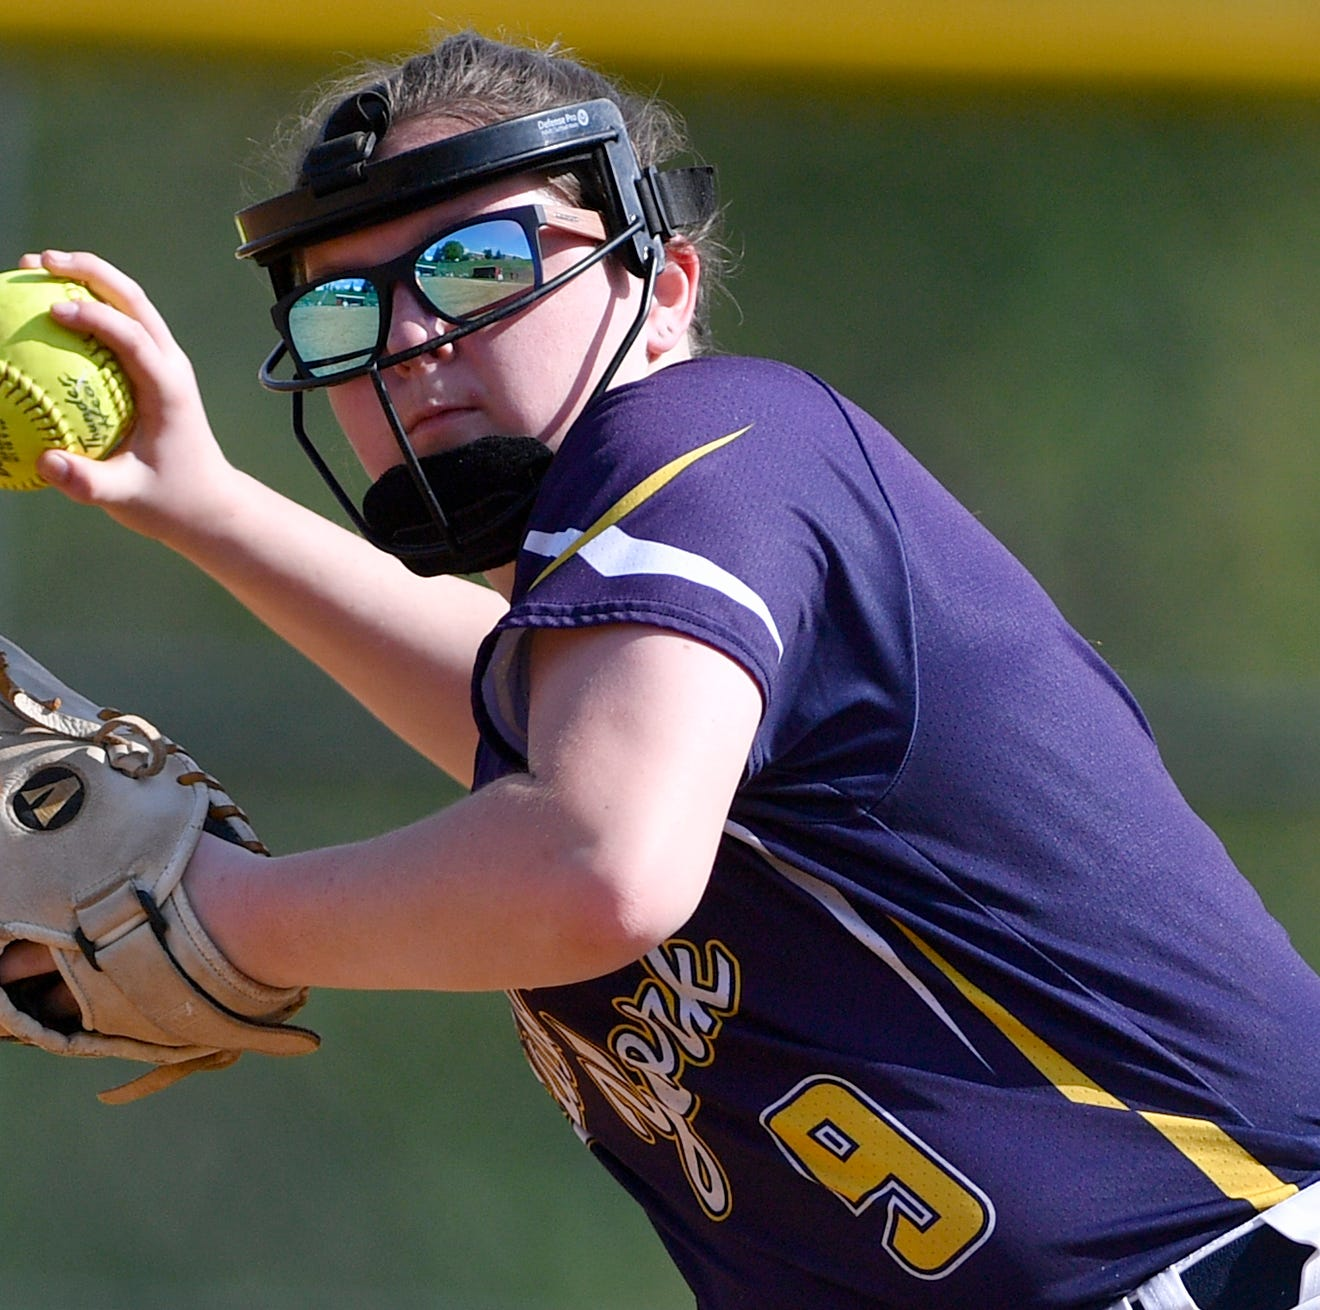 DISTRICT 3 PLAYOFFS, THURSDAY, MAY 23: Eastern York moves to District 3 4-A softball semis